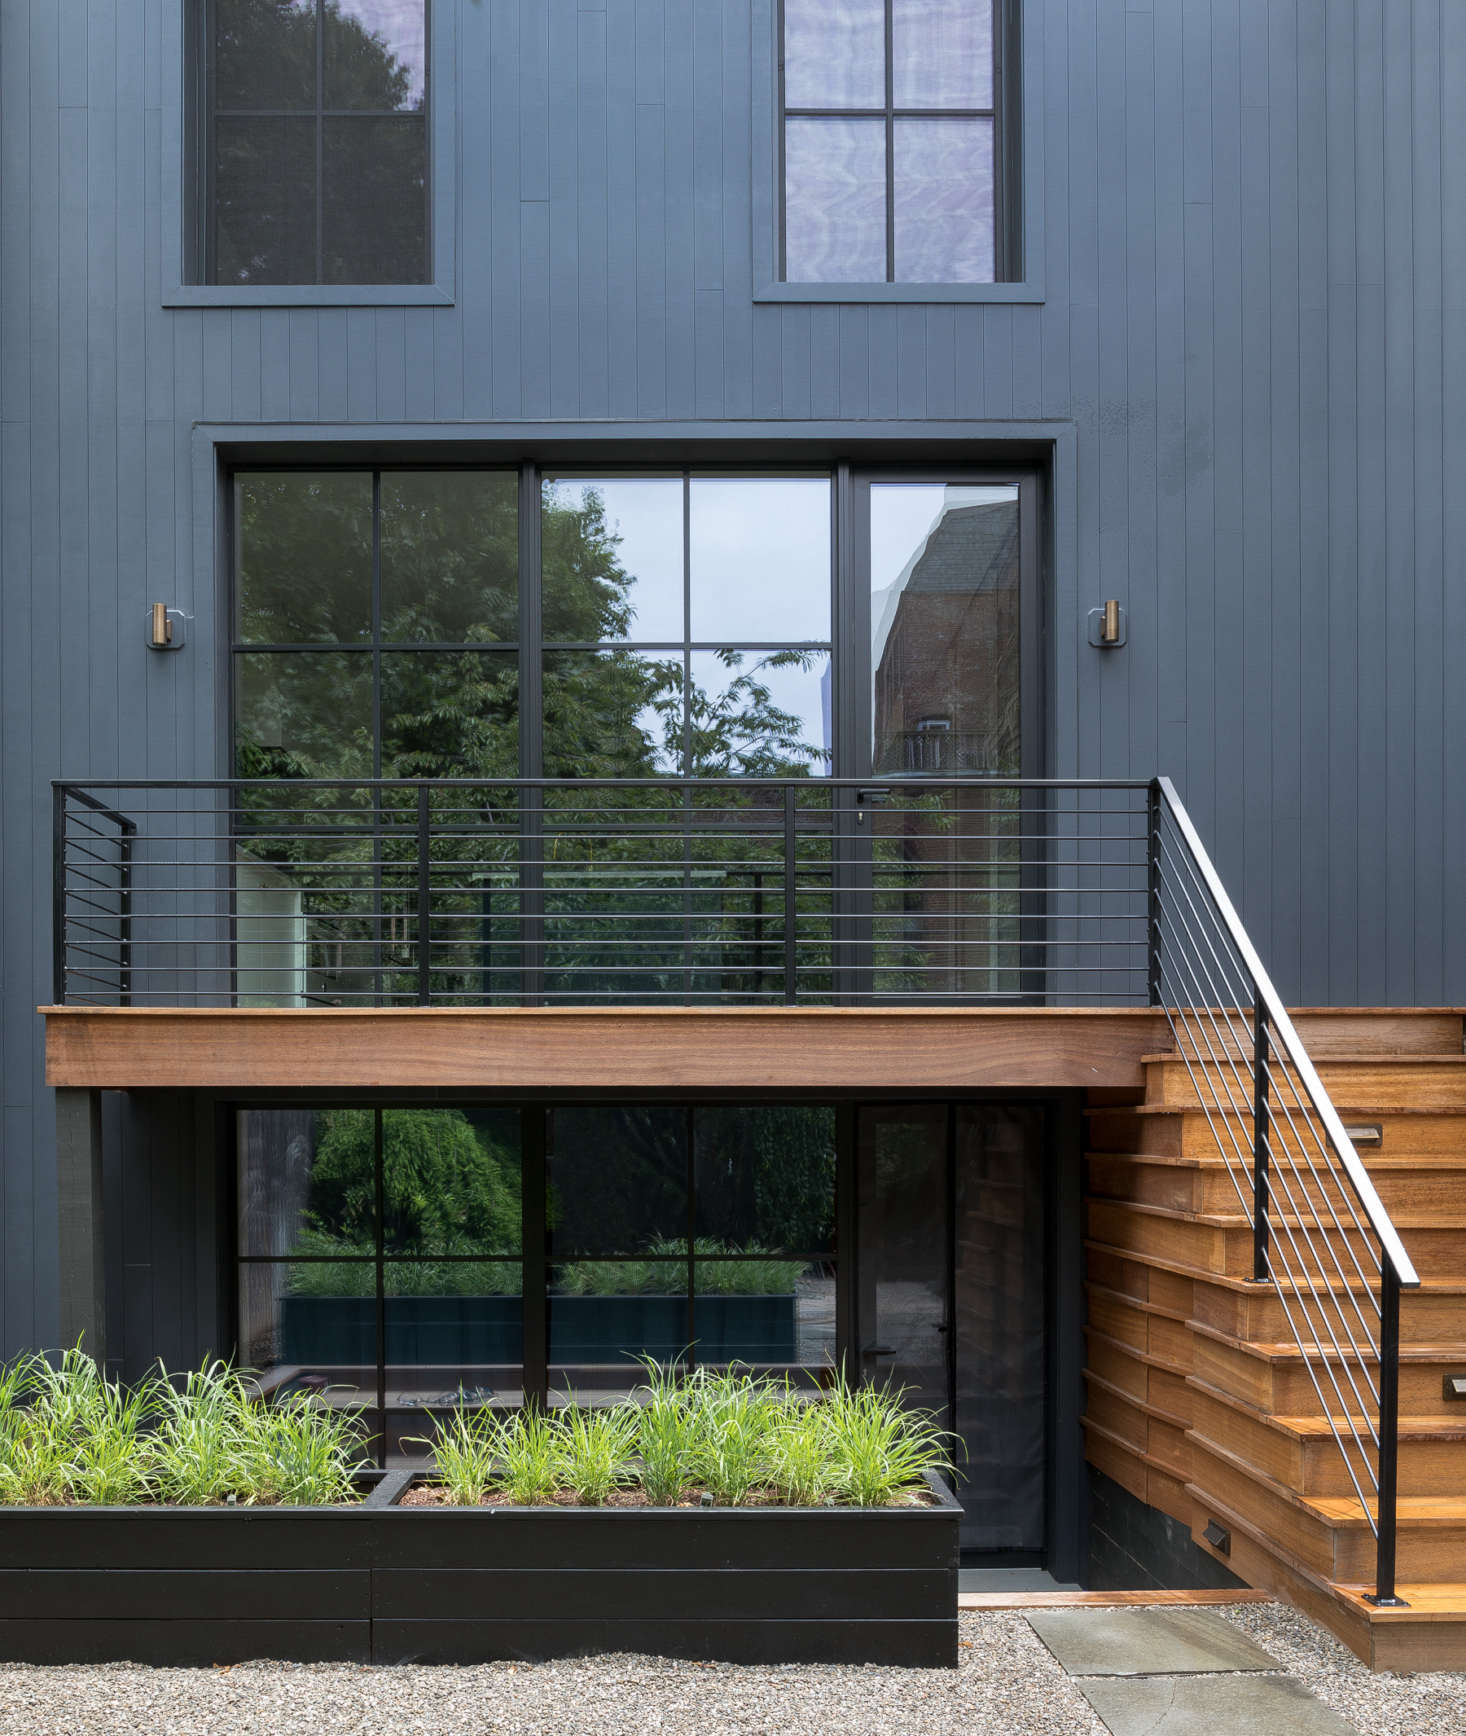 Modern steel railings complement the new steel windows on the back wall, which continue down to the garden level (that space was converted into a separate apartment for the homeowners' parents or a future rental). The architects used Boral's Truexterior vertical siding with a nickel gap joint for the exterior cladding and mahogany wood for the new deck.